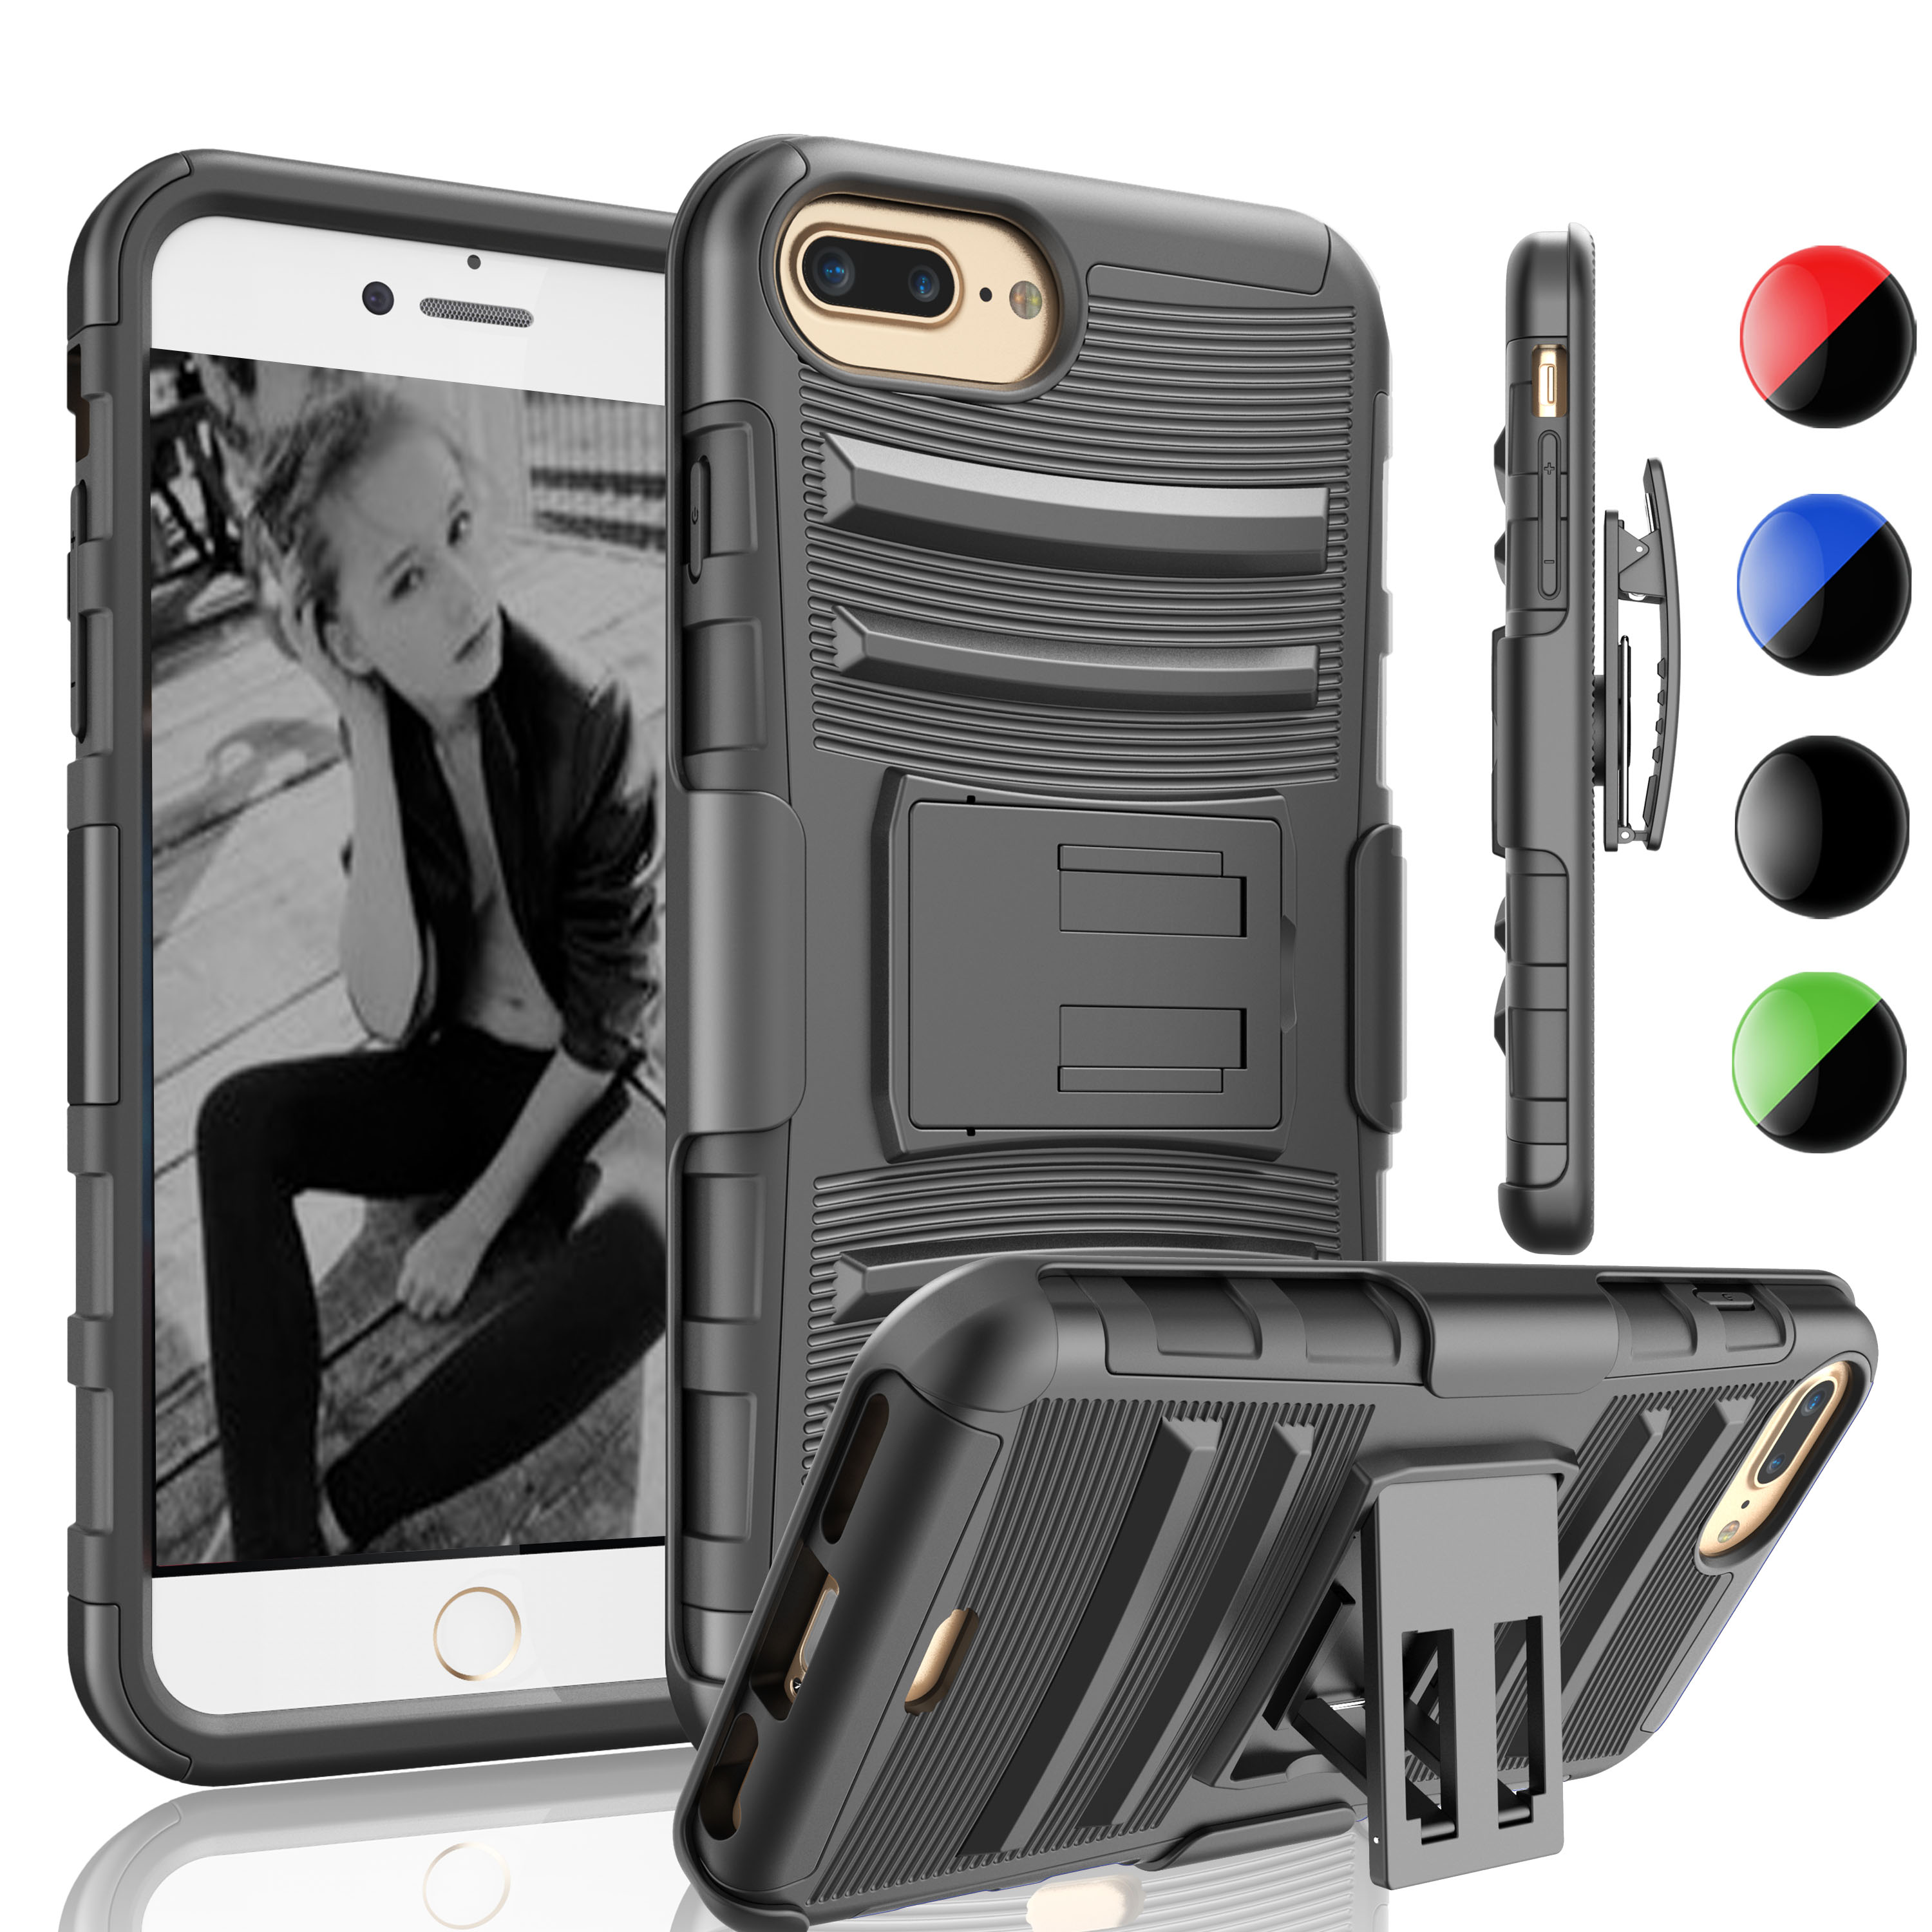 Apple iPhone 7 Plus / iPhone 8 Plus / iPhone 7 / iPhone 8 Case Holster Belt Clip, Njjex [Heavy Duty] Armor Shock Proof [Belt Clip] Holster [Kickstand] Combo Rugged Protective Cases Cover